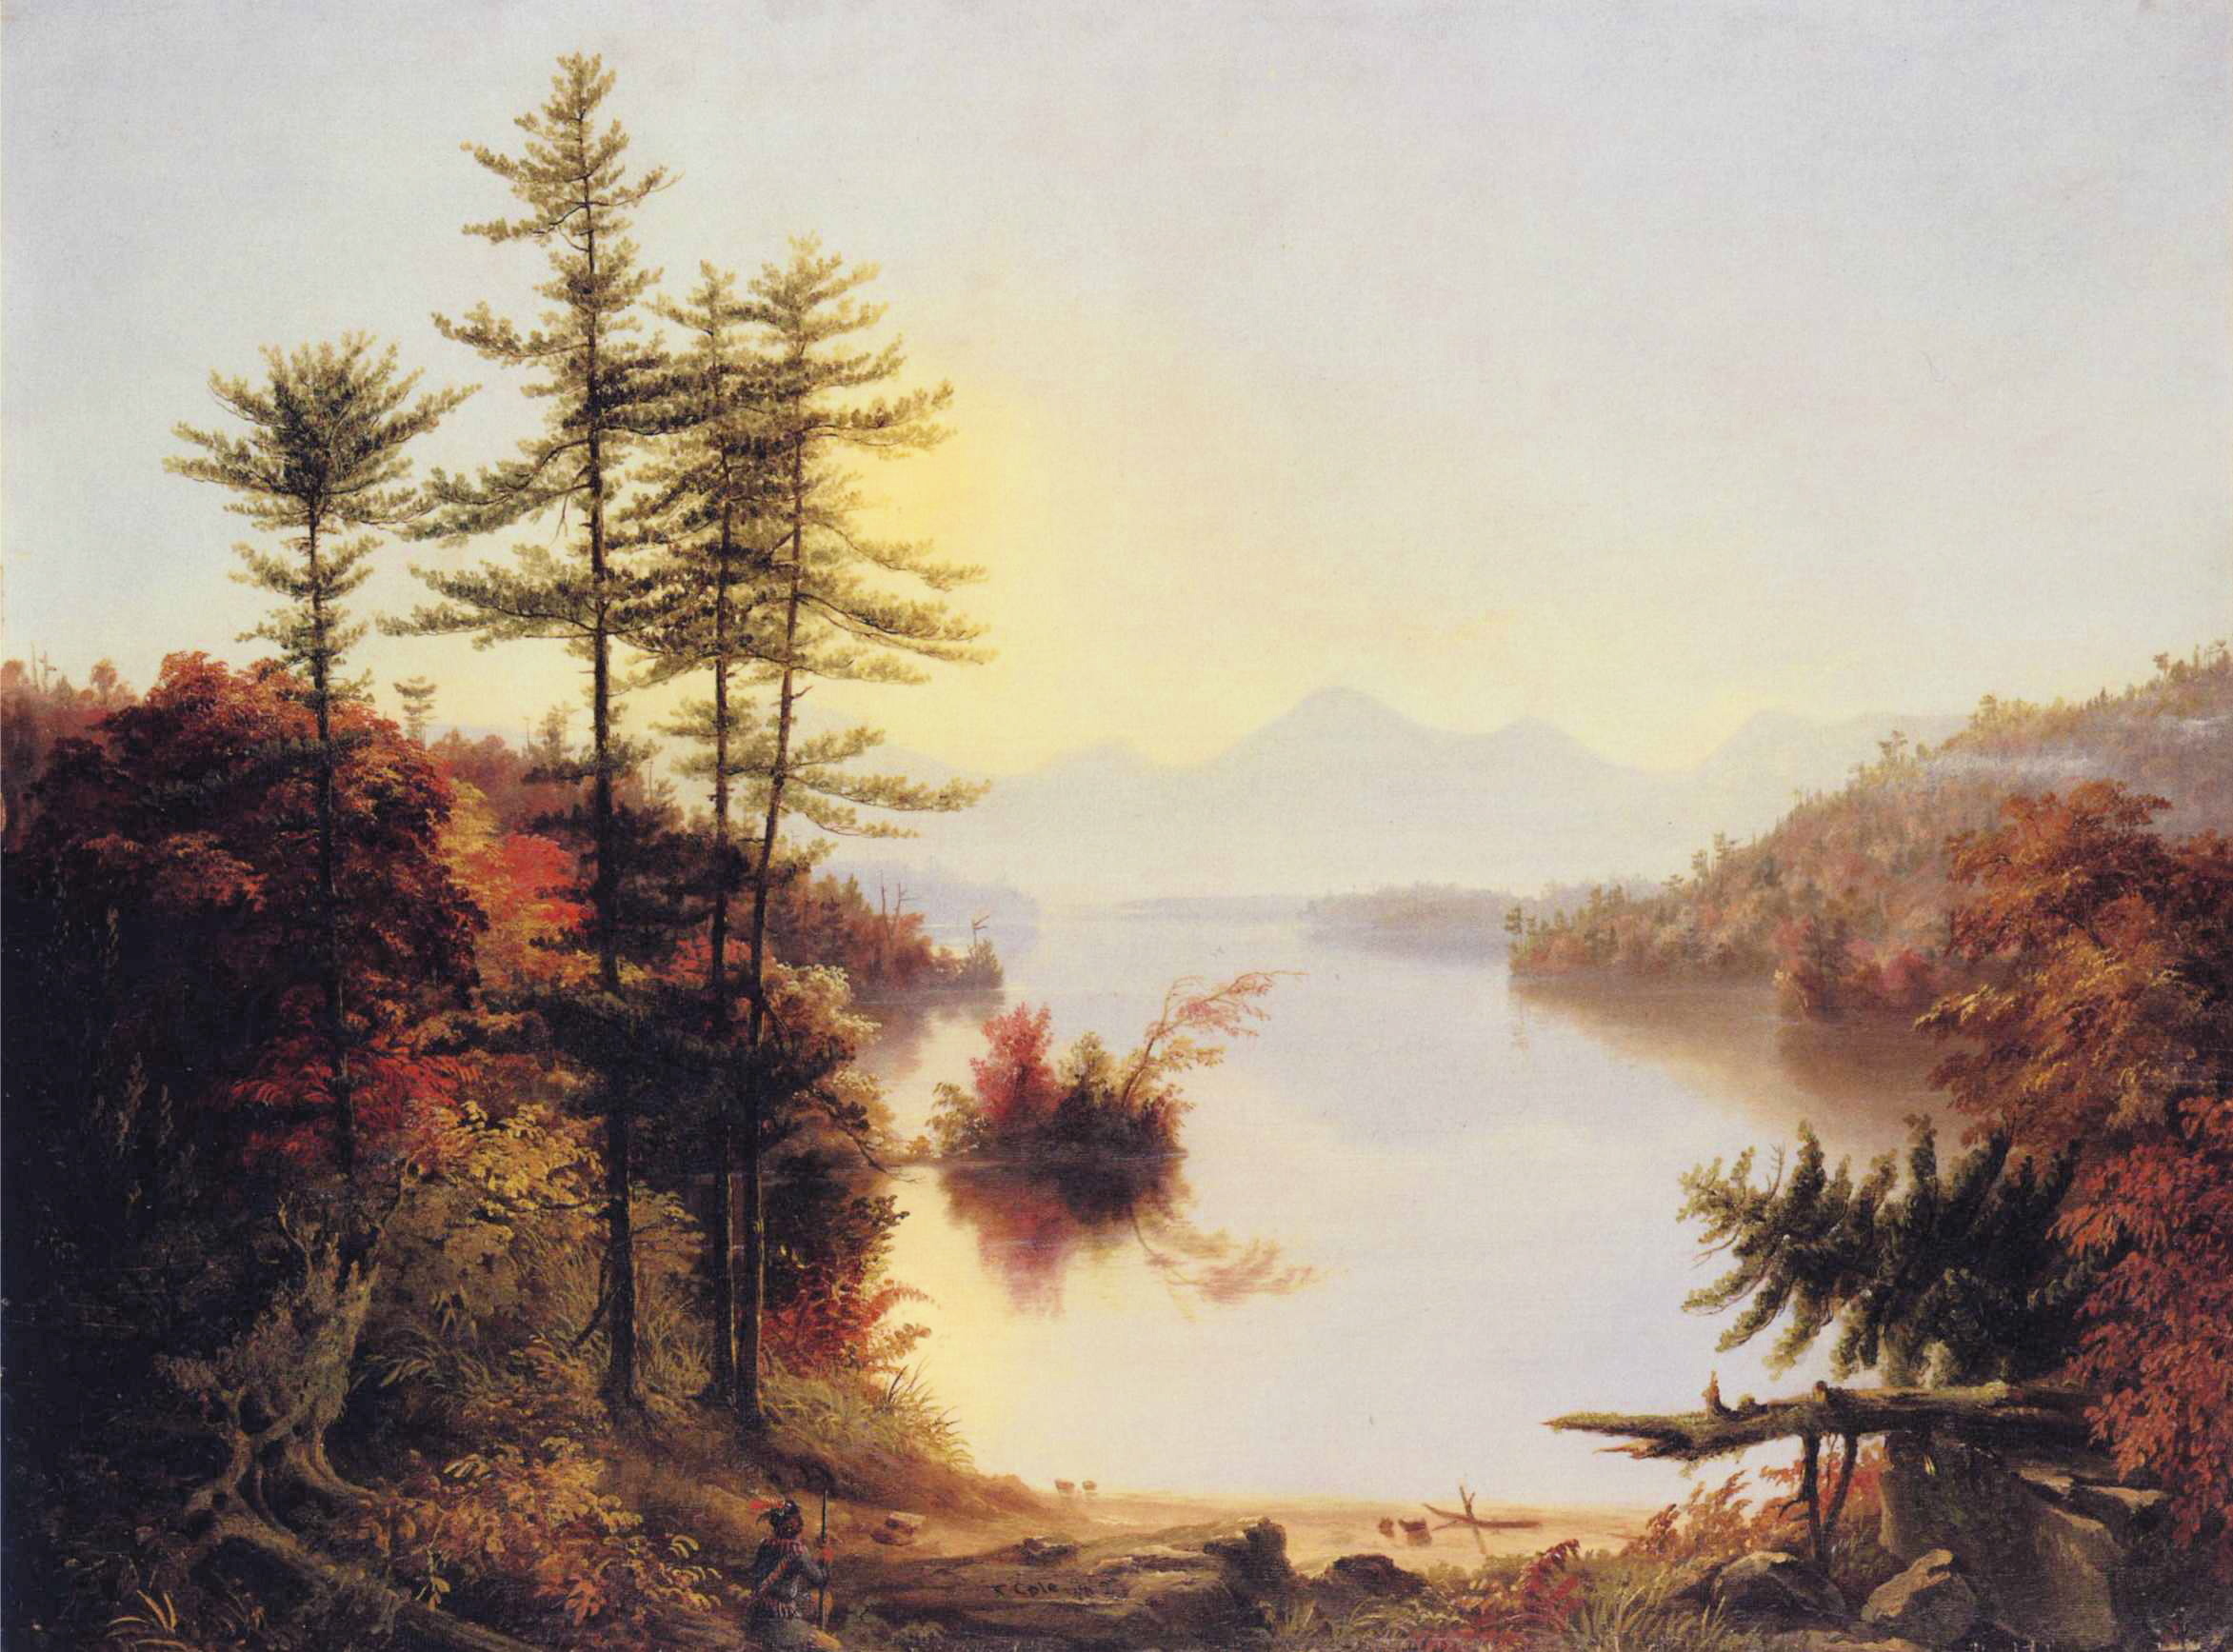 painter thomas cole 2 essay Free essay: he went to philadelphia and ohio as a traveling portrait painter in 1819 in addition, he traveled to europe where he painted many italian.